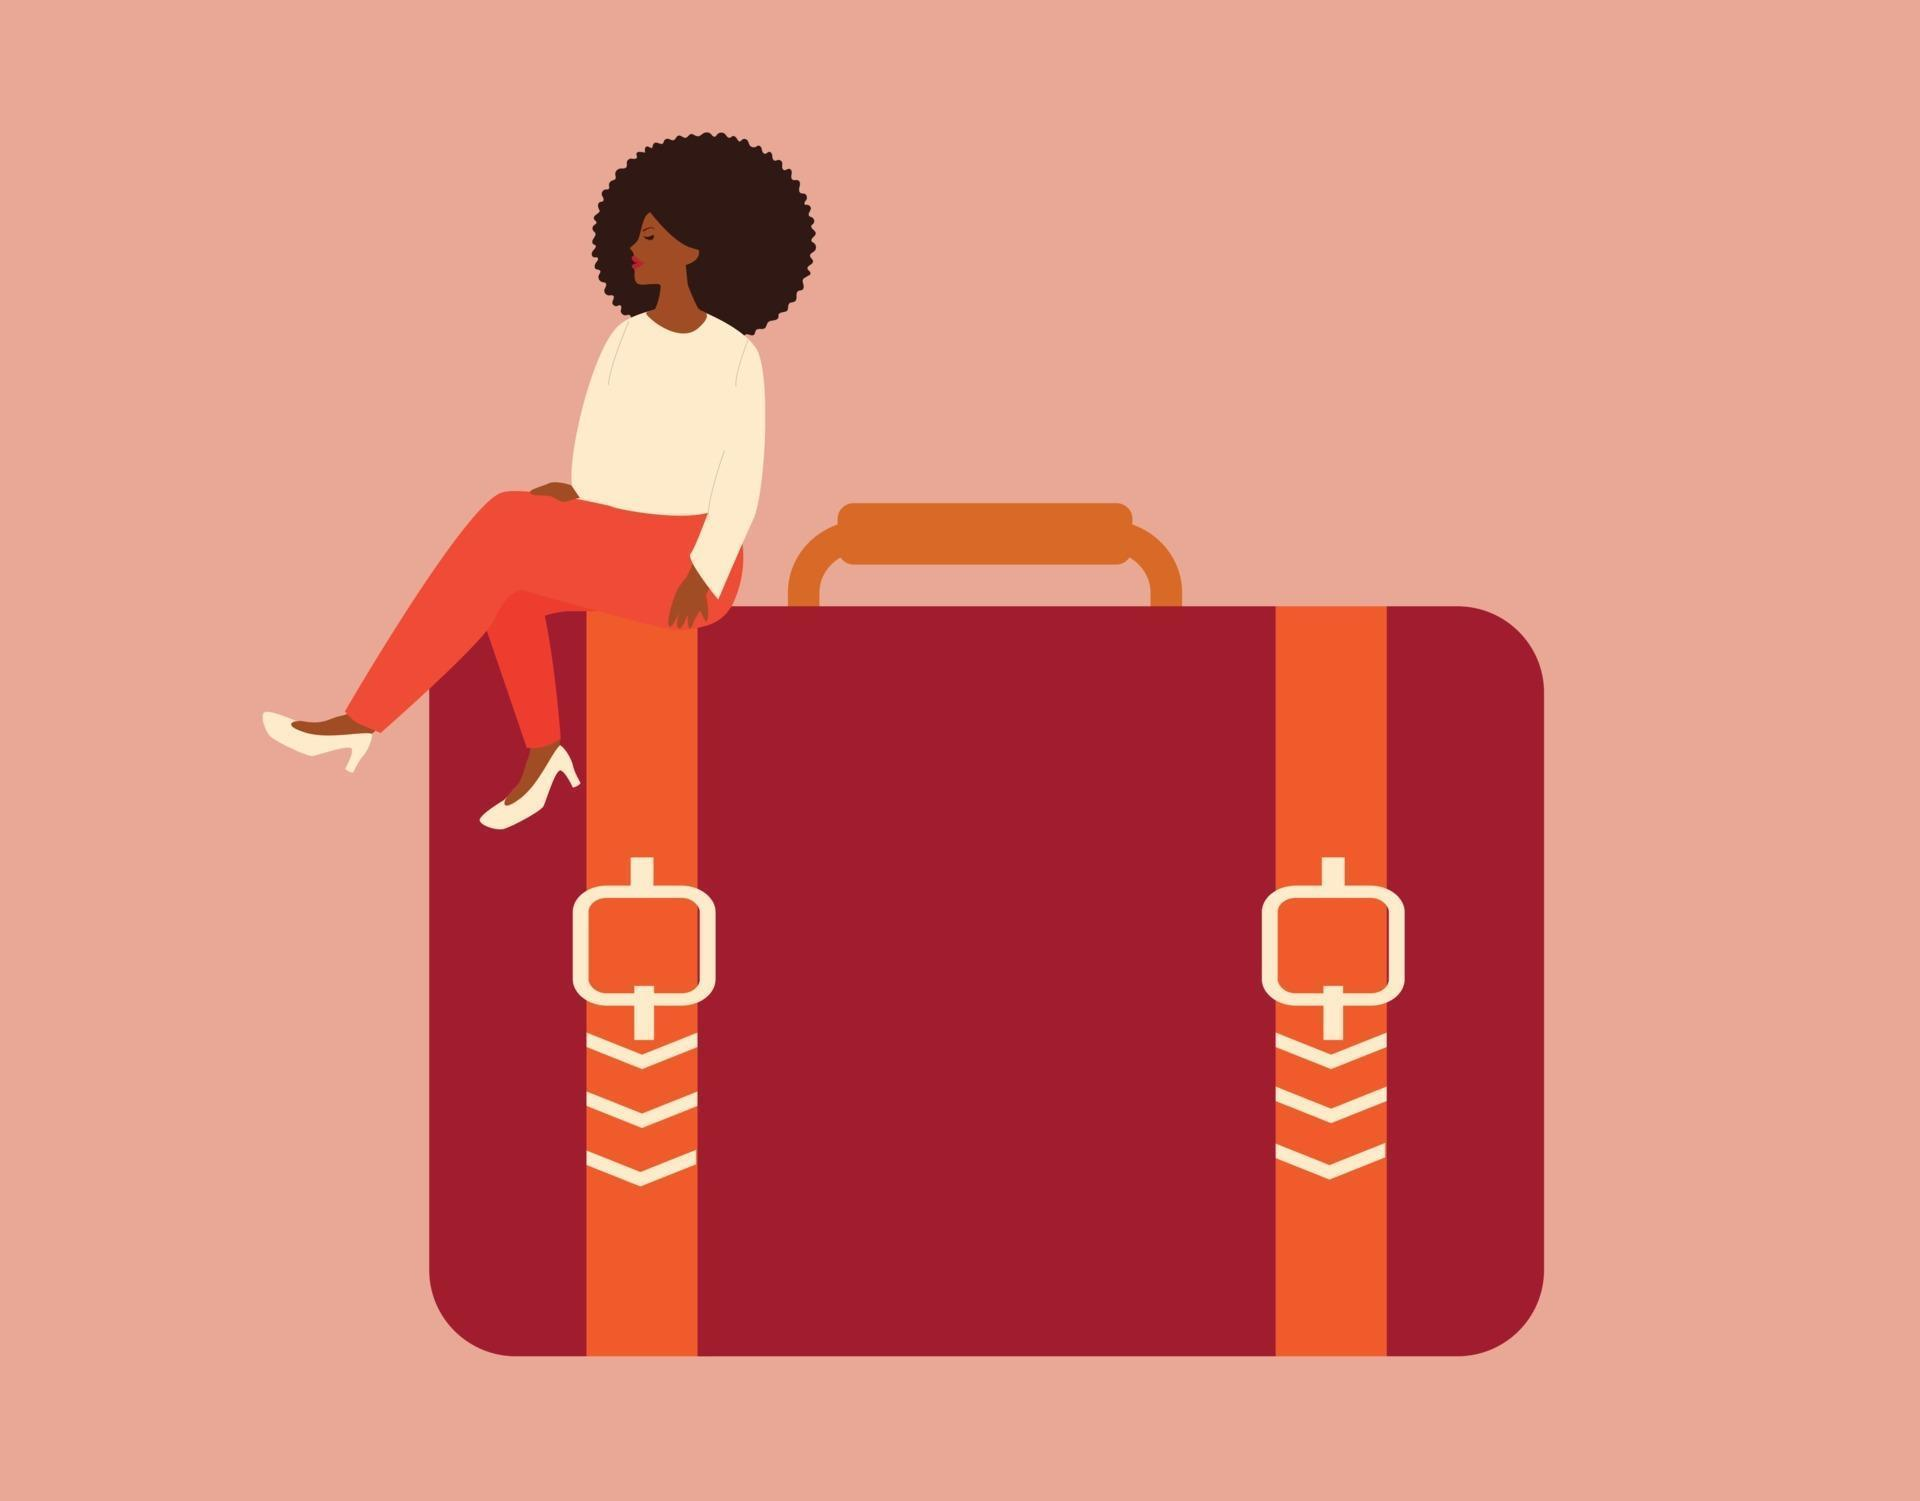 American black woman sits on a big briefcase with